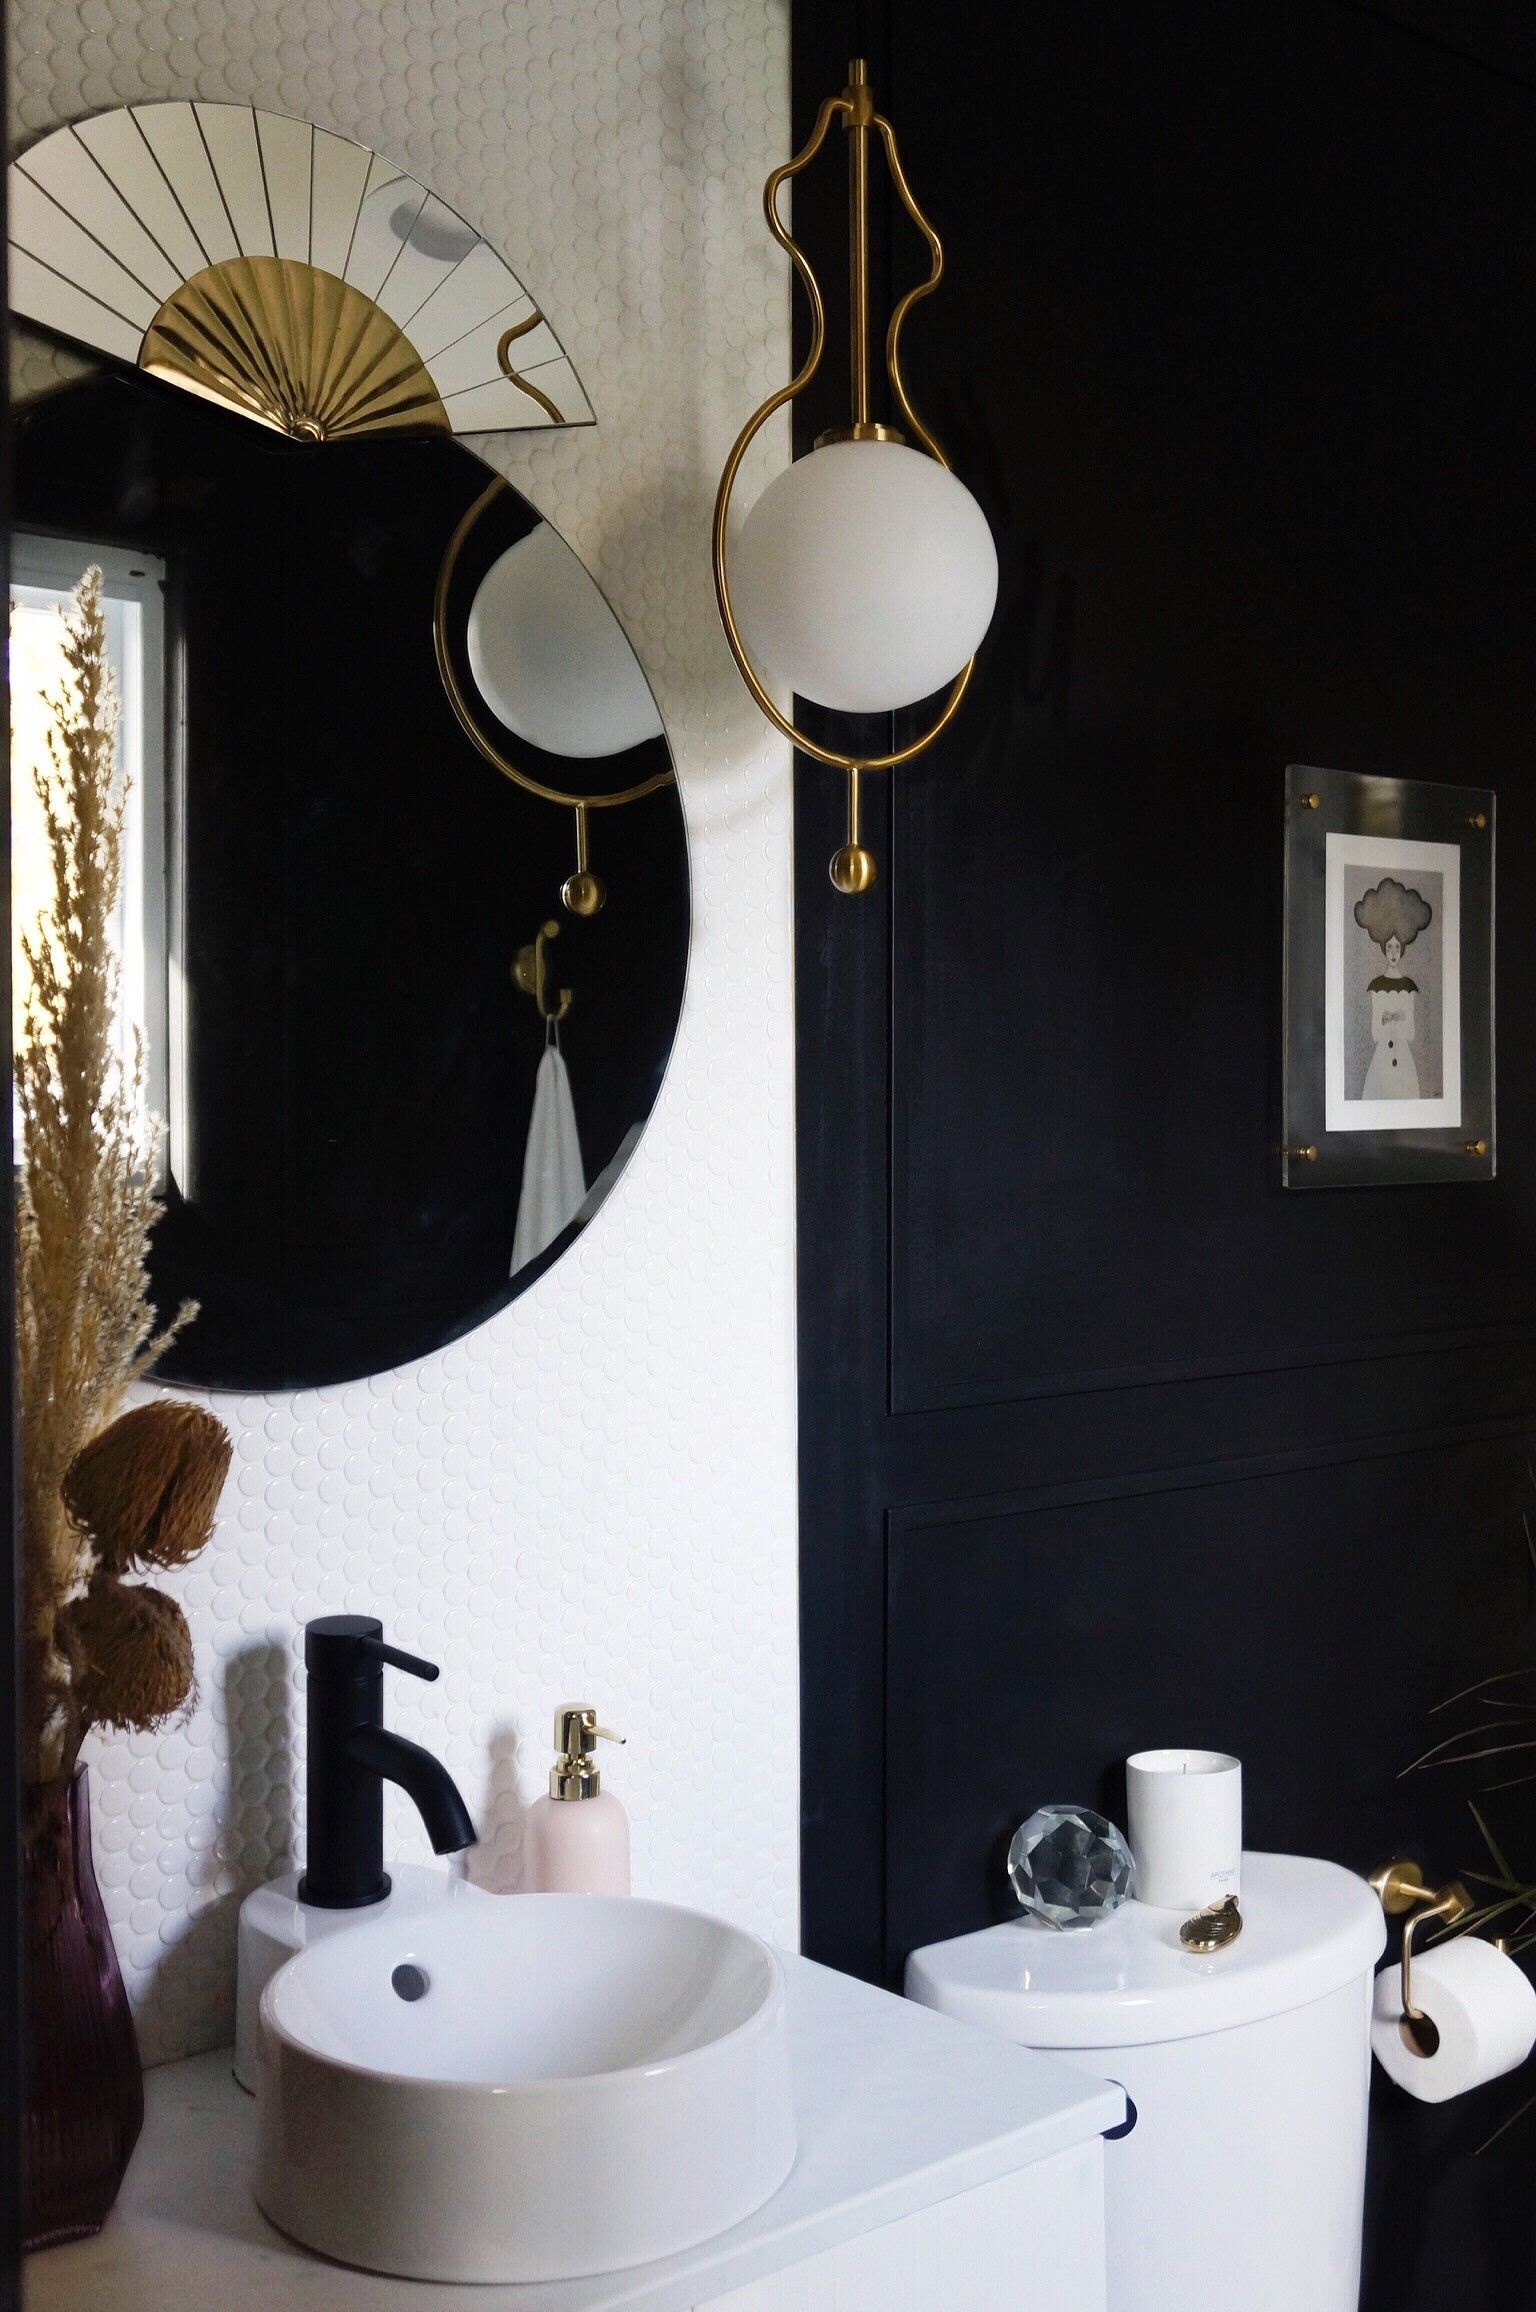 A black and white bathroom makeover with an art deco twist